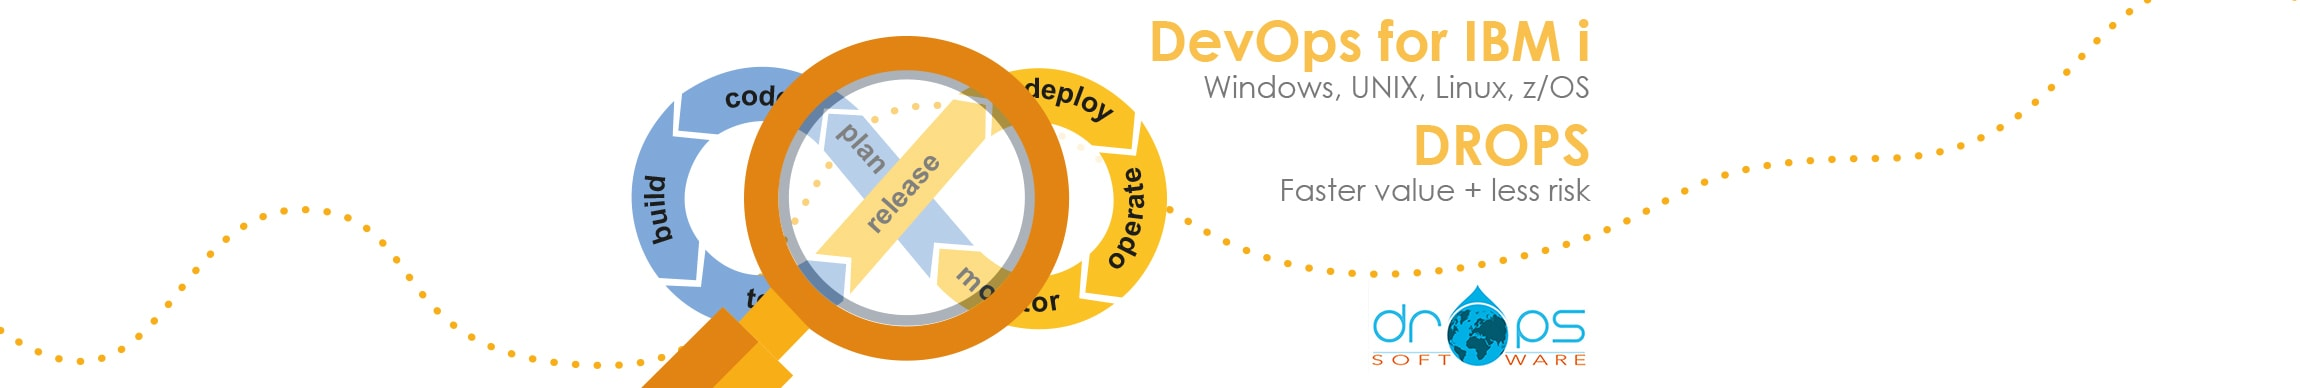 DevOps for IBM i - Windows, Unix, Linux, z/OS